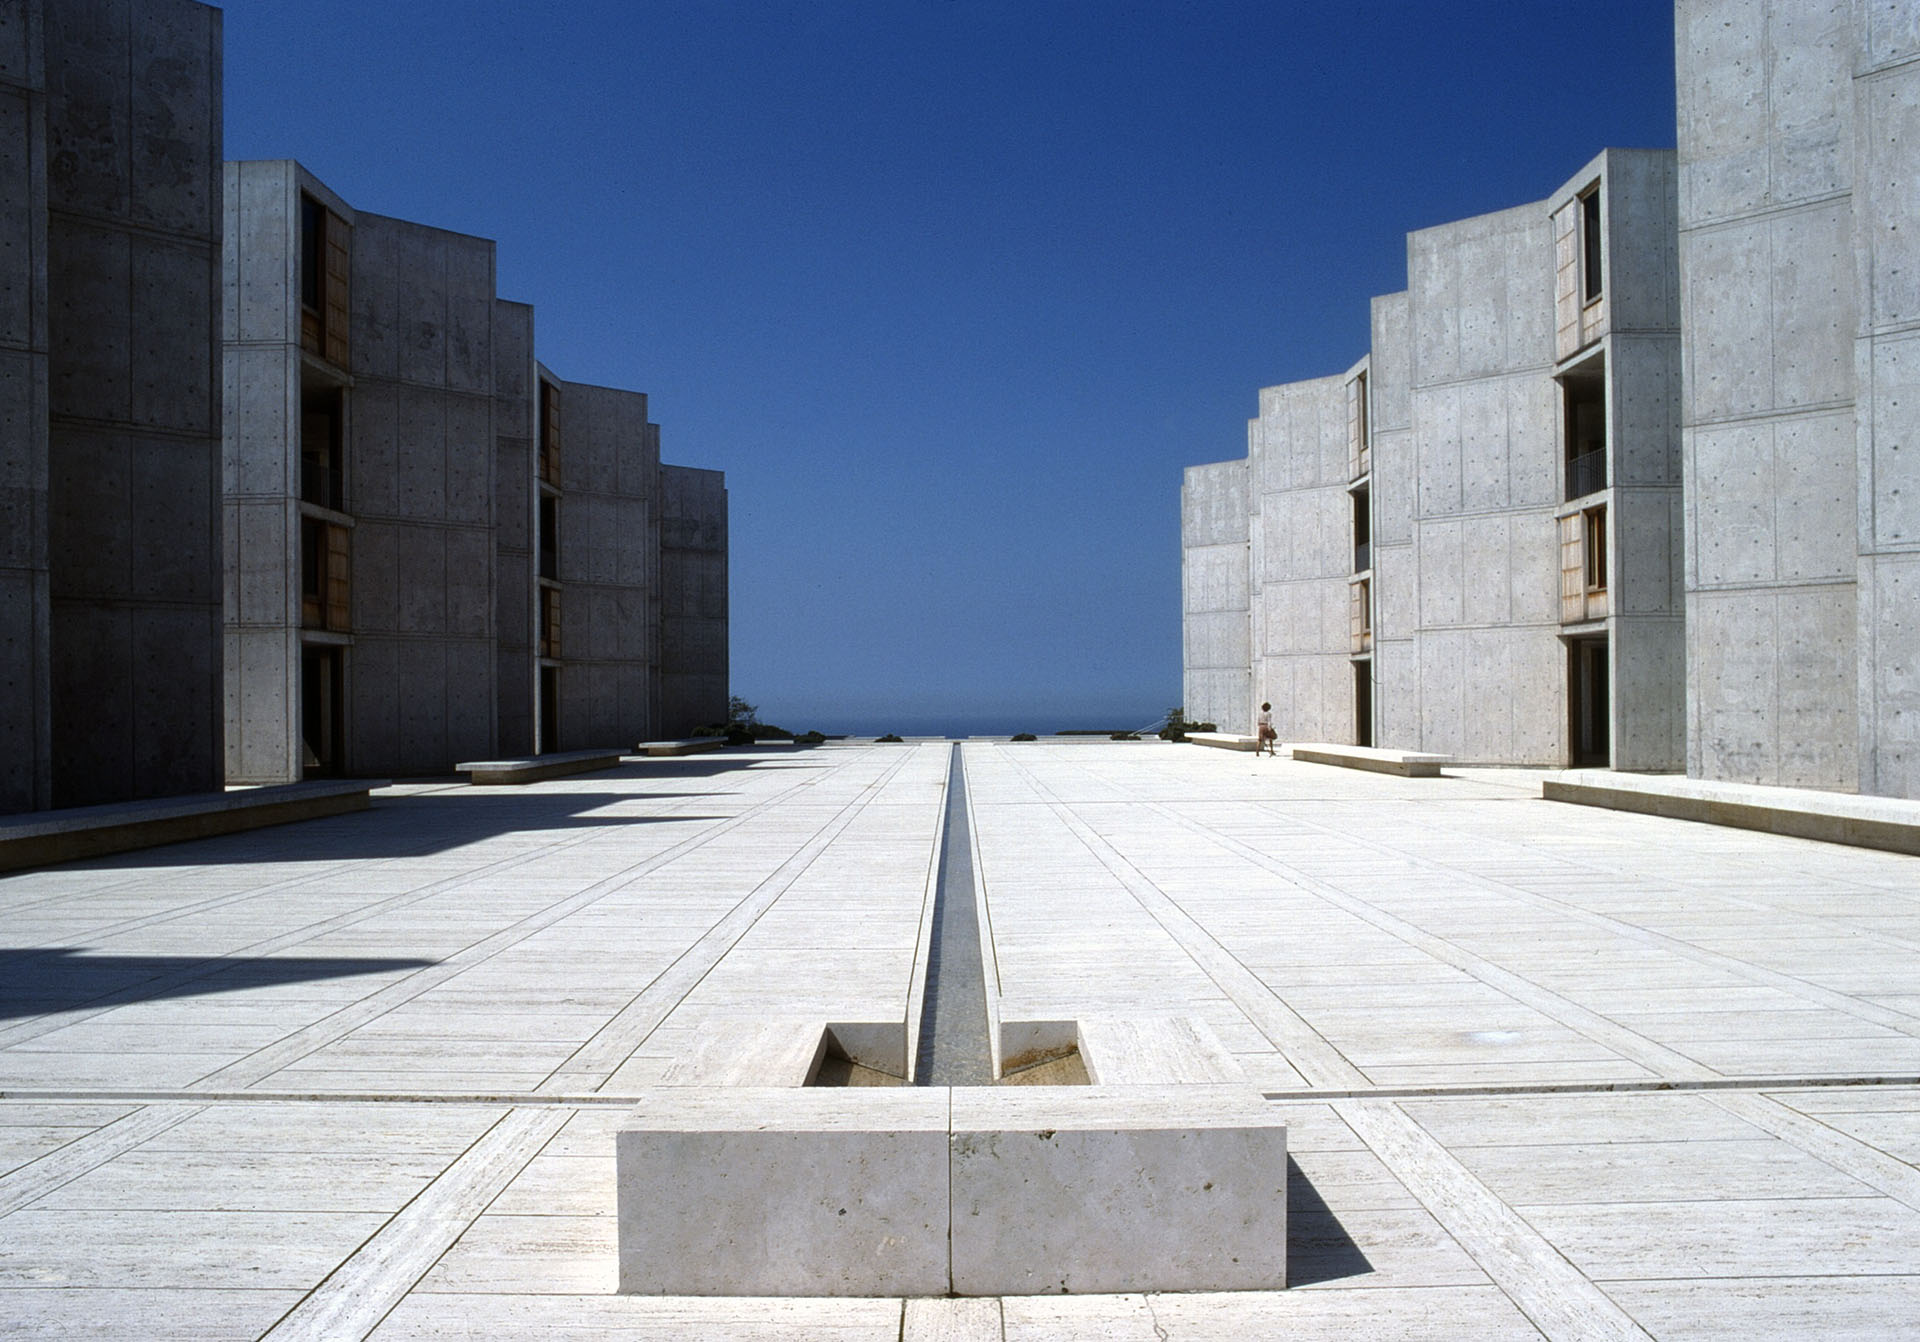 Salk Institute for Biological Studies (La Jolla, California, USA) - architect Louis Kahn, structural consultant August Komendant | Miracles in Concrete | Louis I Kahn | STIRworld